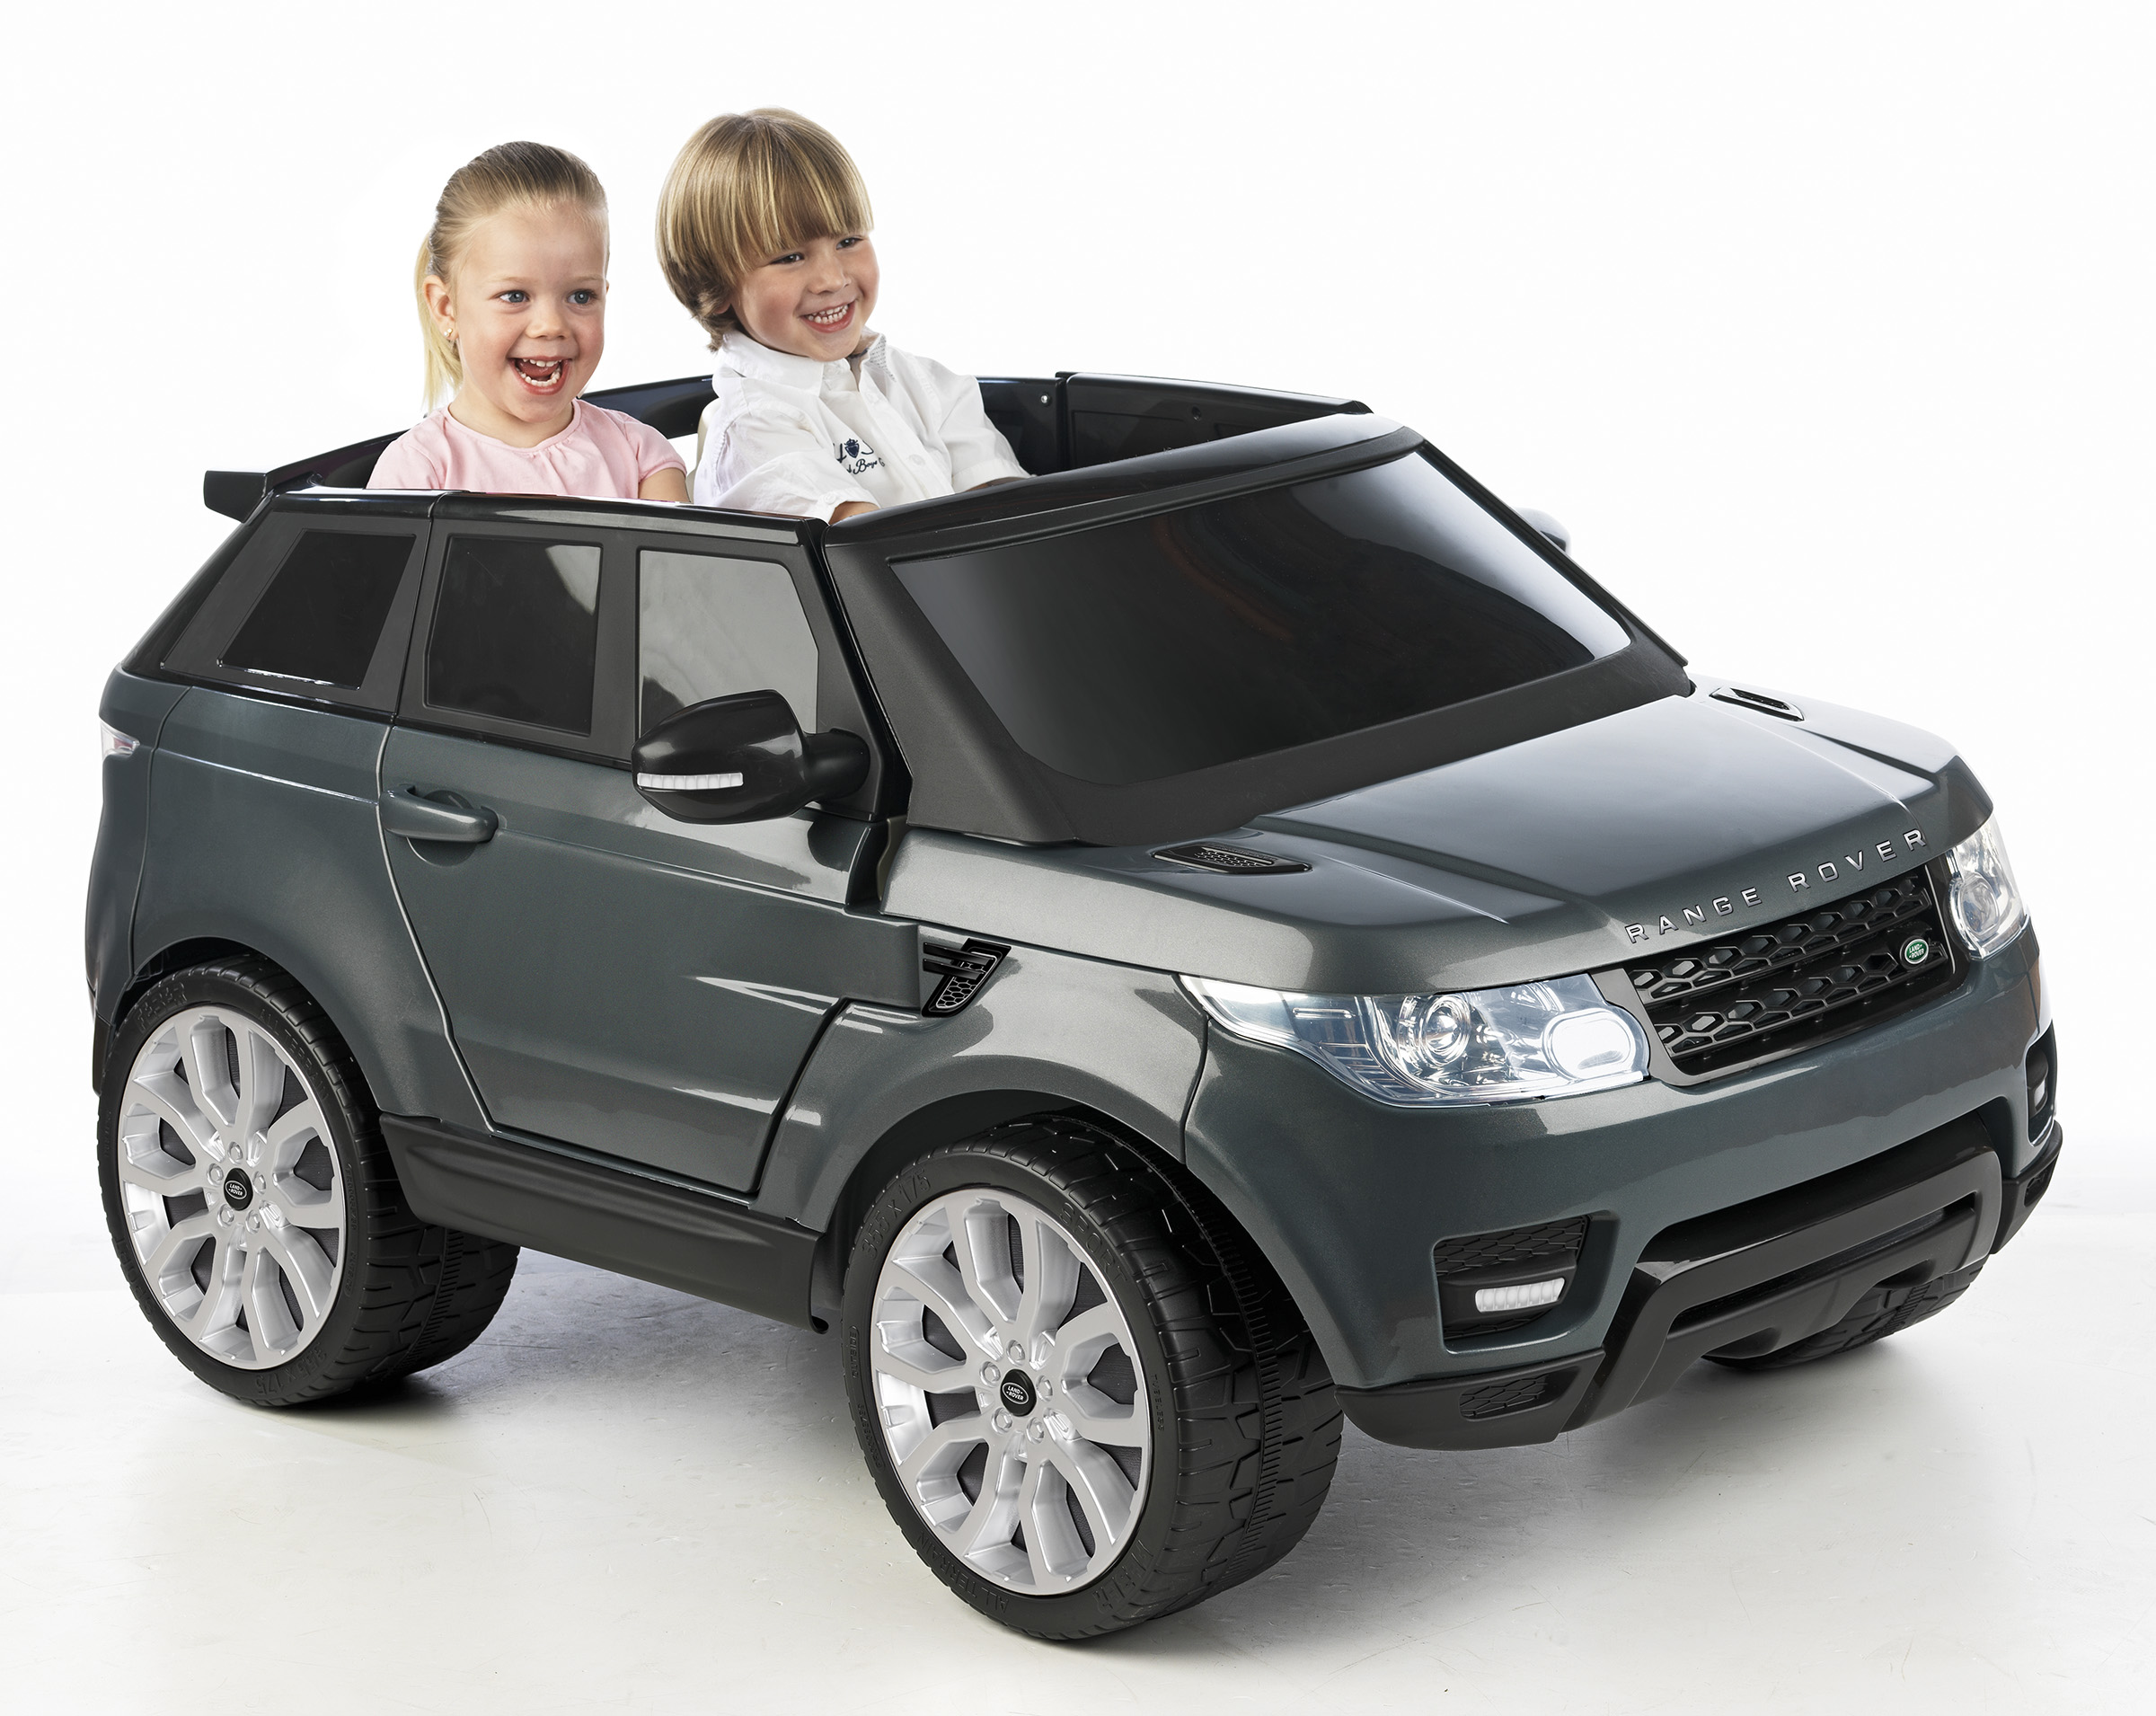 Famosa Releases New Range Rover Ride The Toy Insider